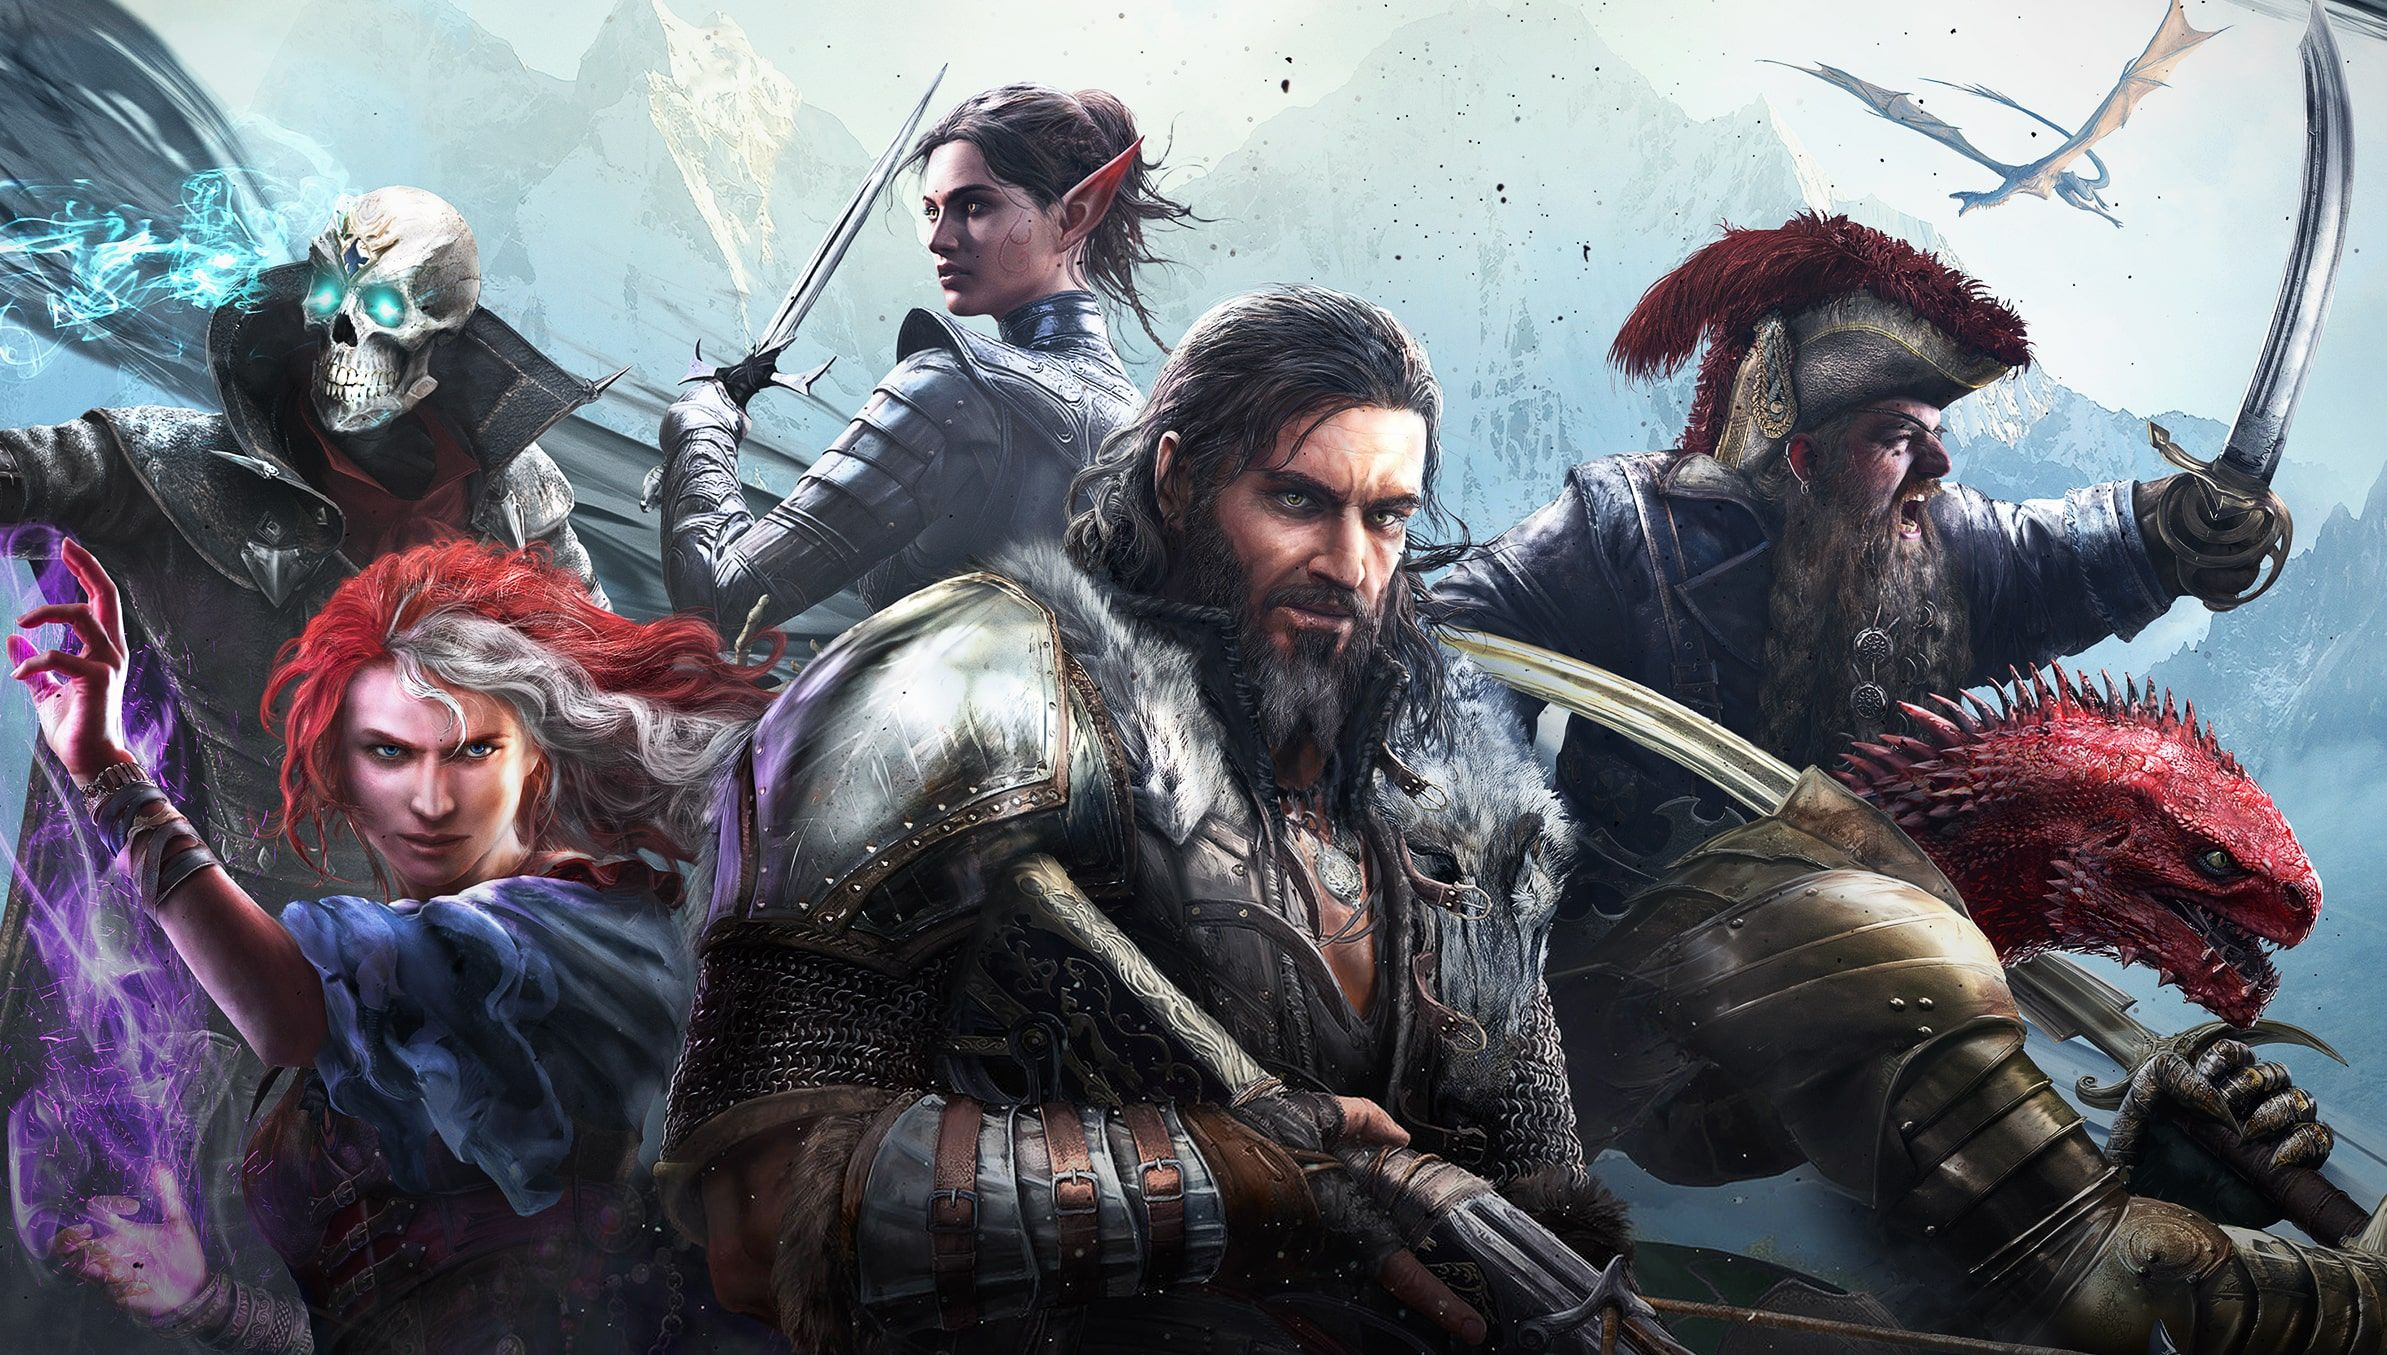 A screenshot of all the main characters from Divinity: Original Sin II.